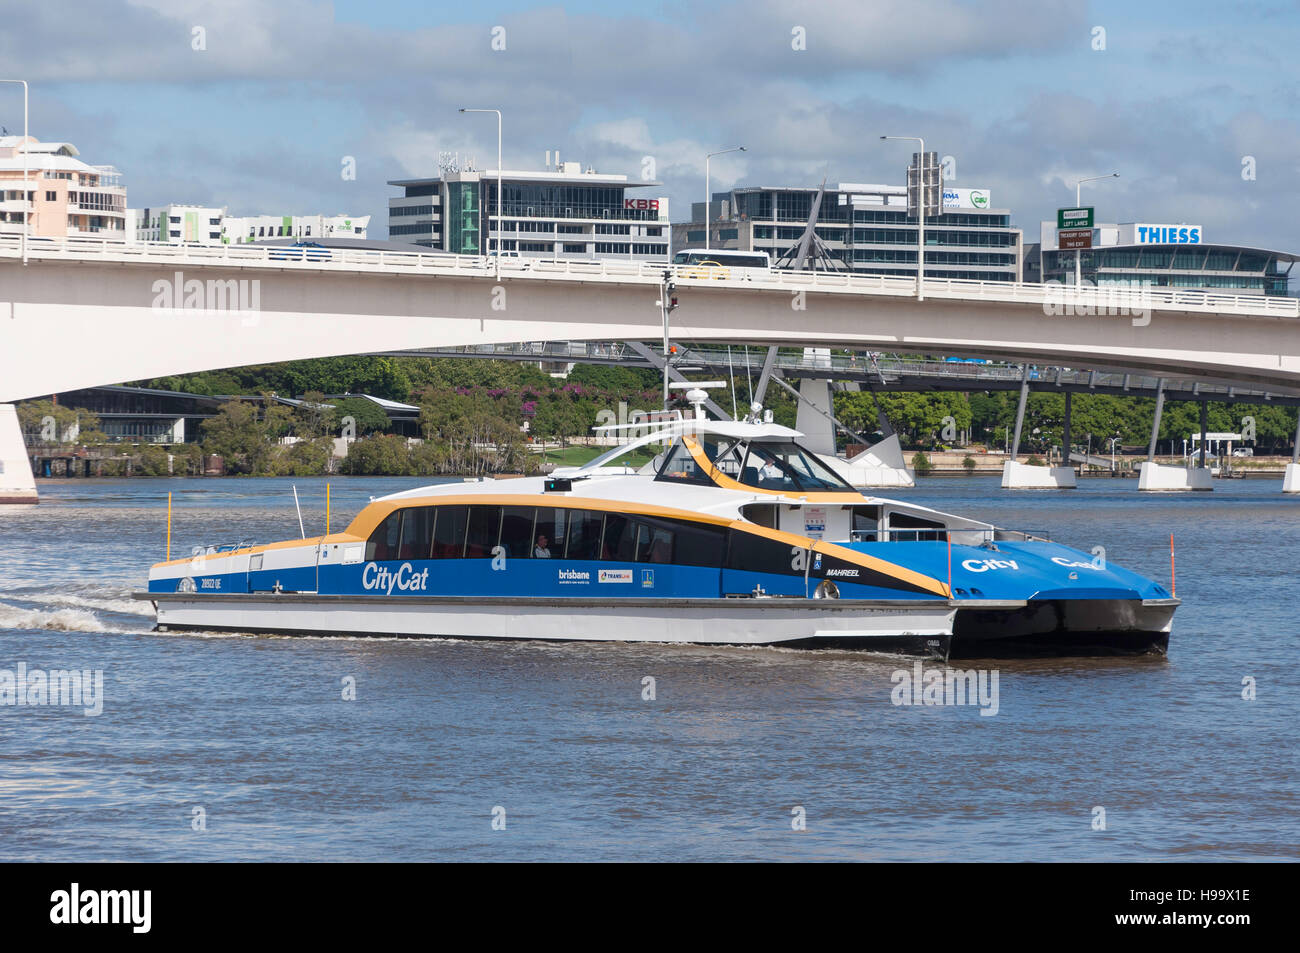 CityCat ferry boat on Brisbane River, Brisbane City, Brisbane, Queensland, Australia Stock Photo